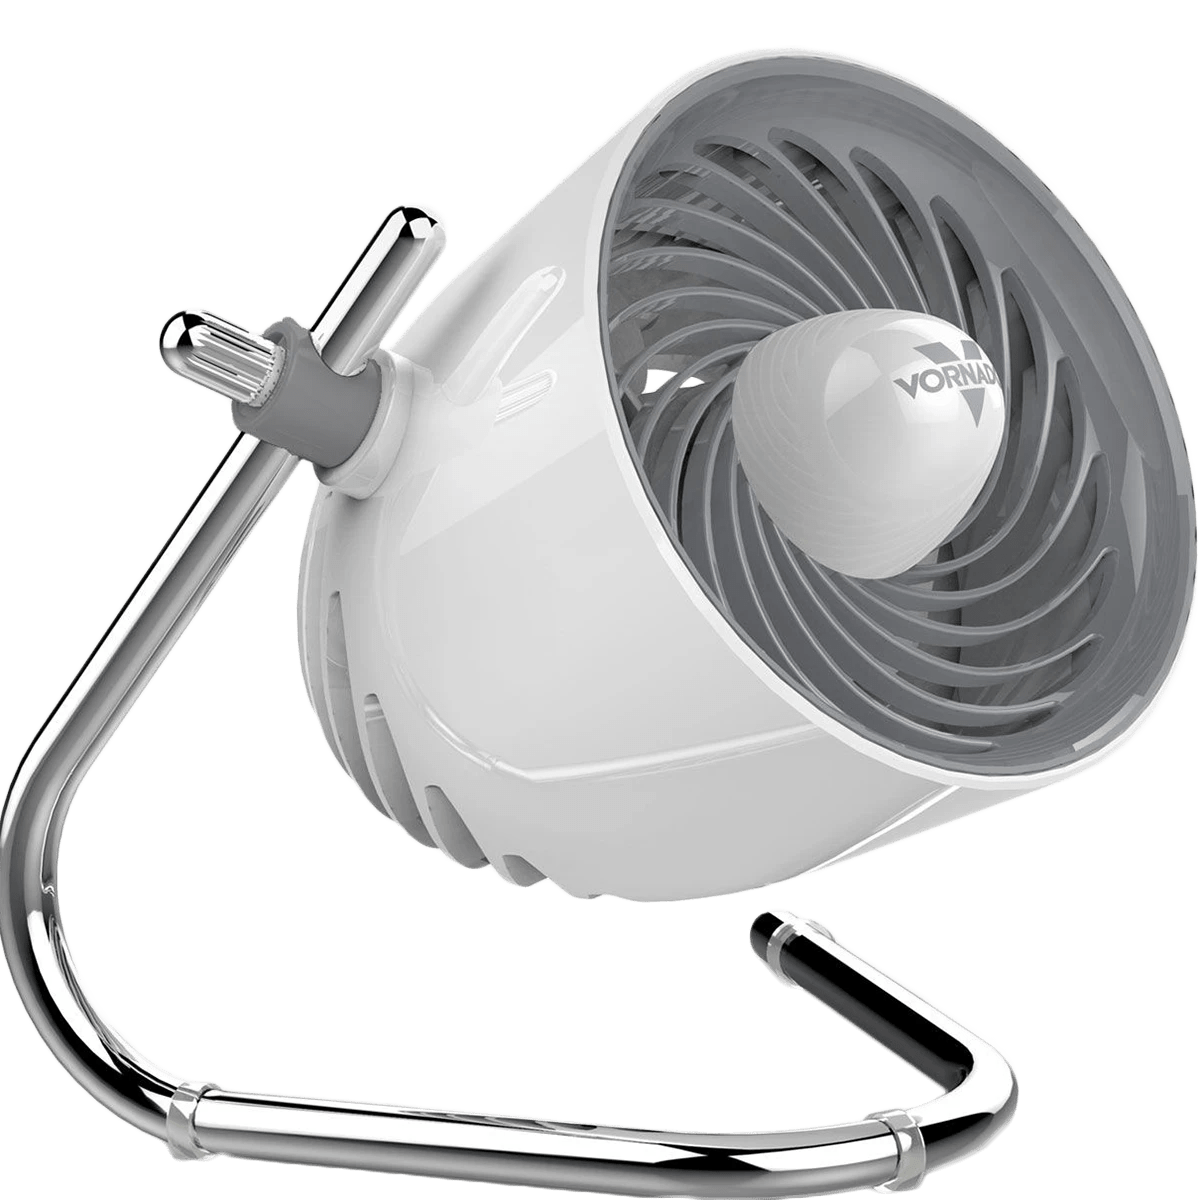 Vornado Fan Vornado Pivot Personal Air Circulator